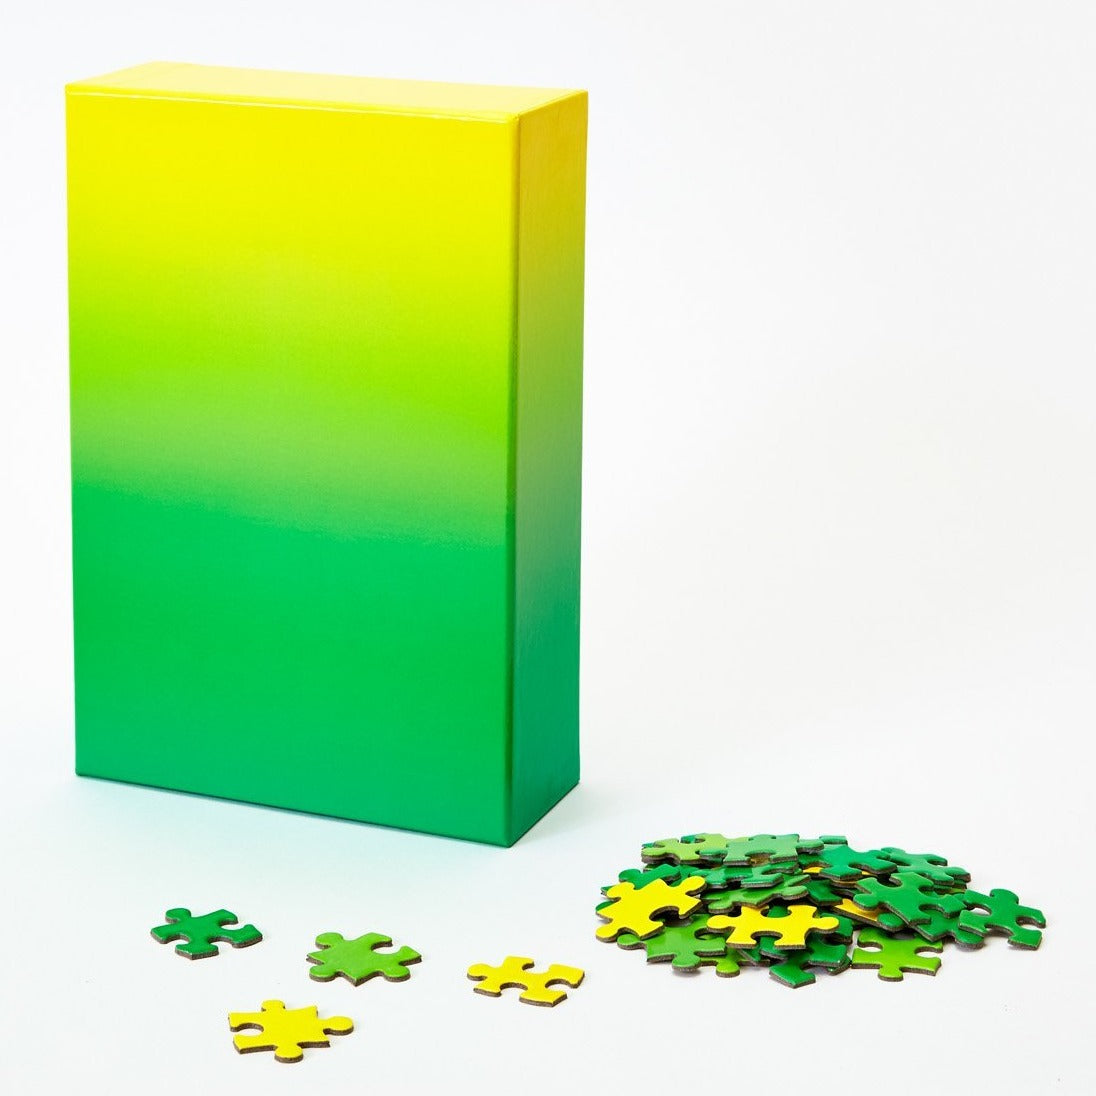 (100 pcs) Gradient Puzzle - Green to Yellow